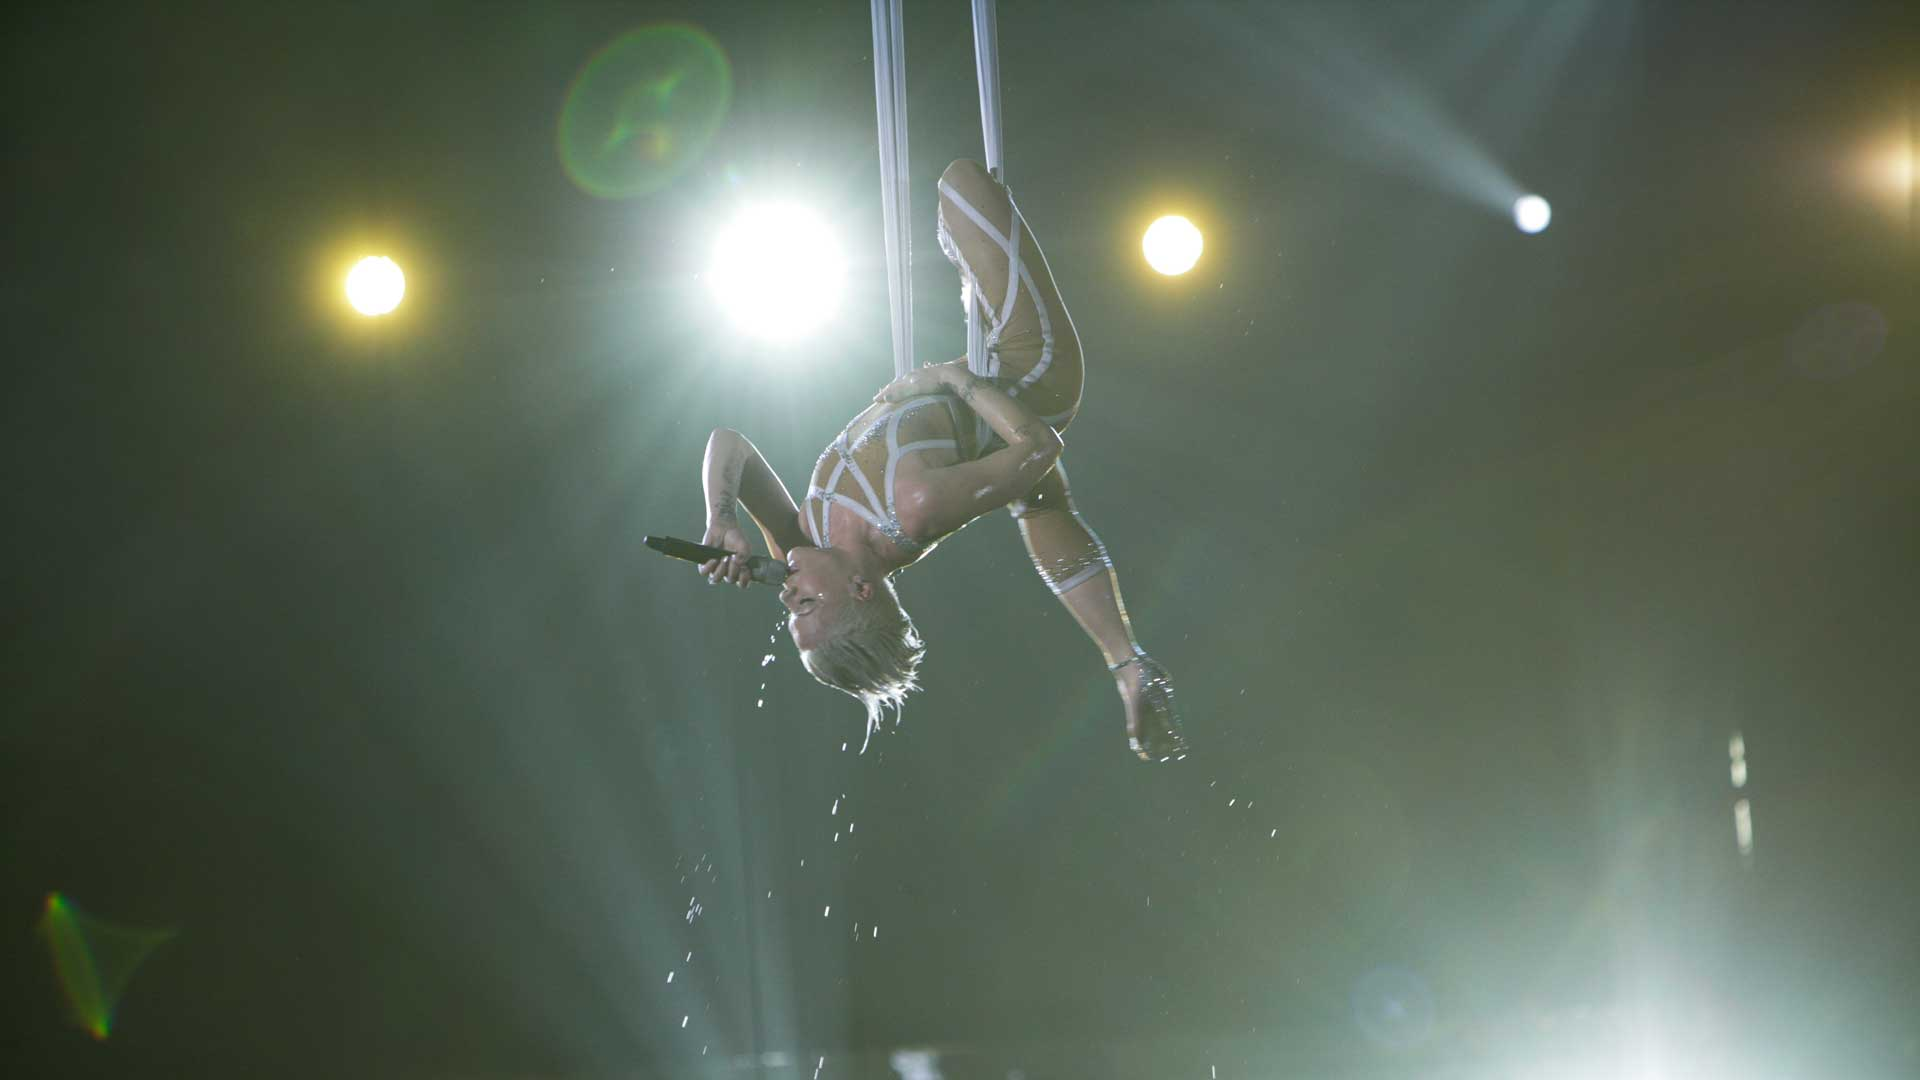 P!nk performs